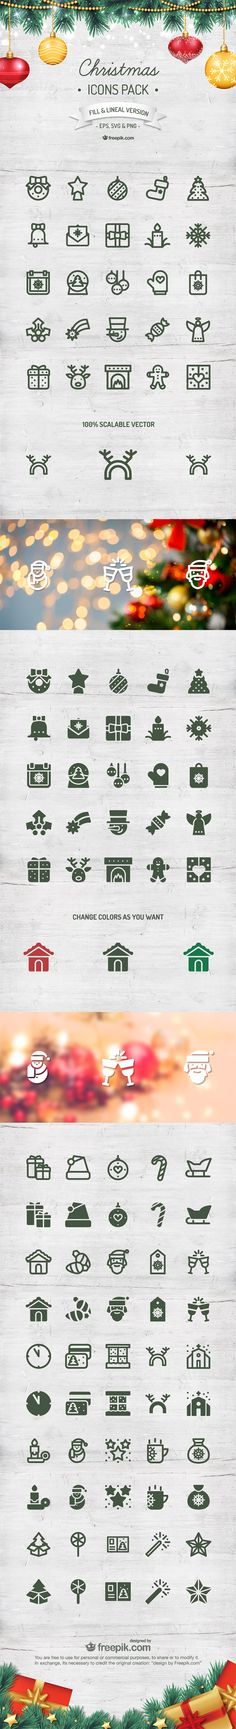 Christmas Icon Pack (100 Icons, 2 Styles, EPS, PNG, SVG)